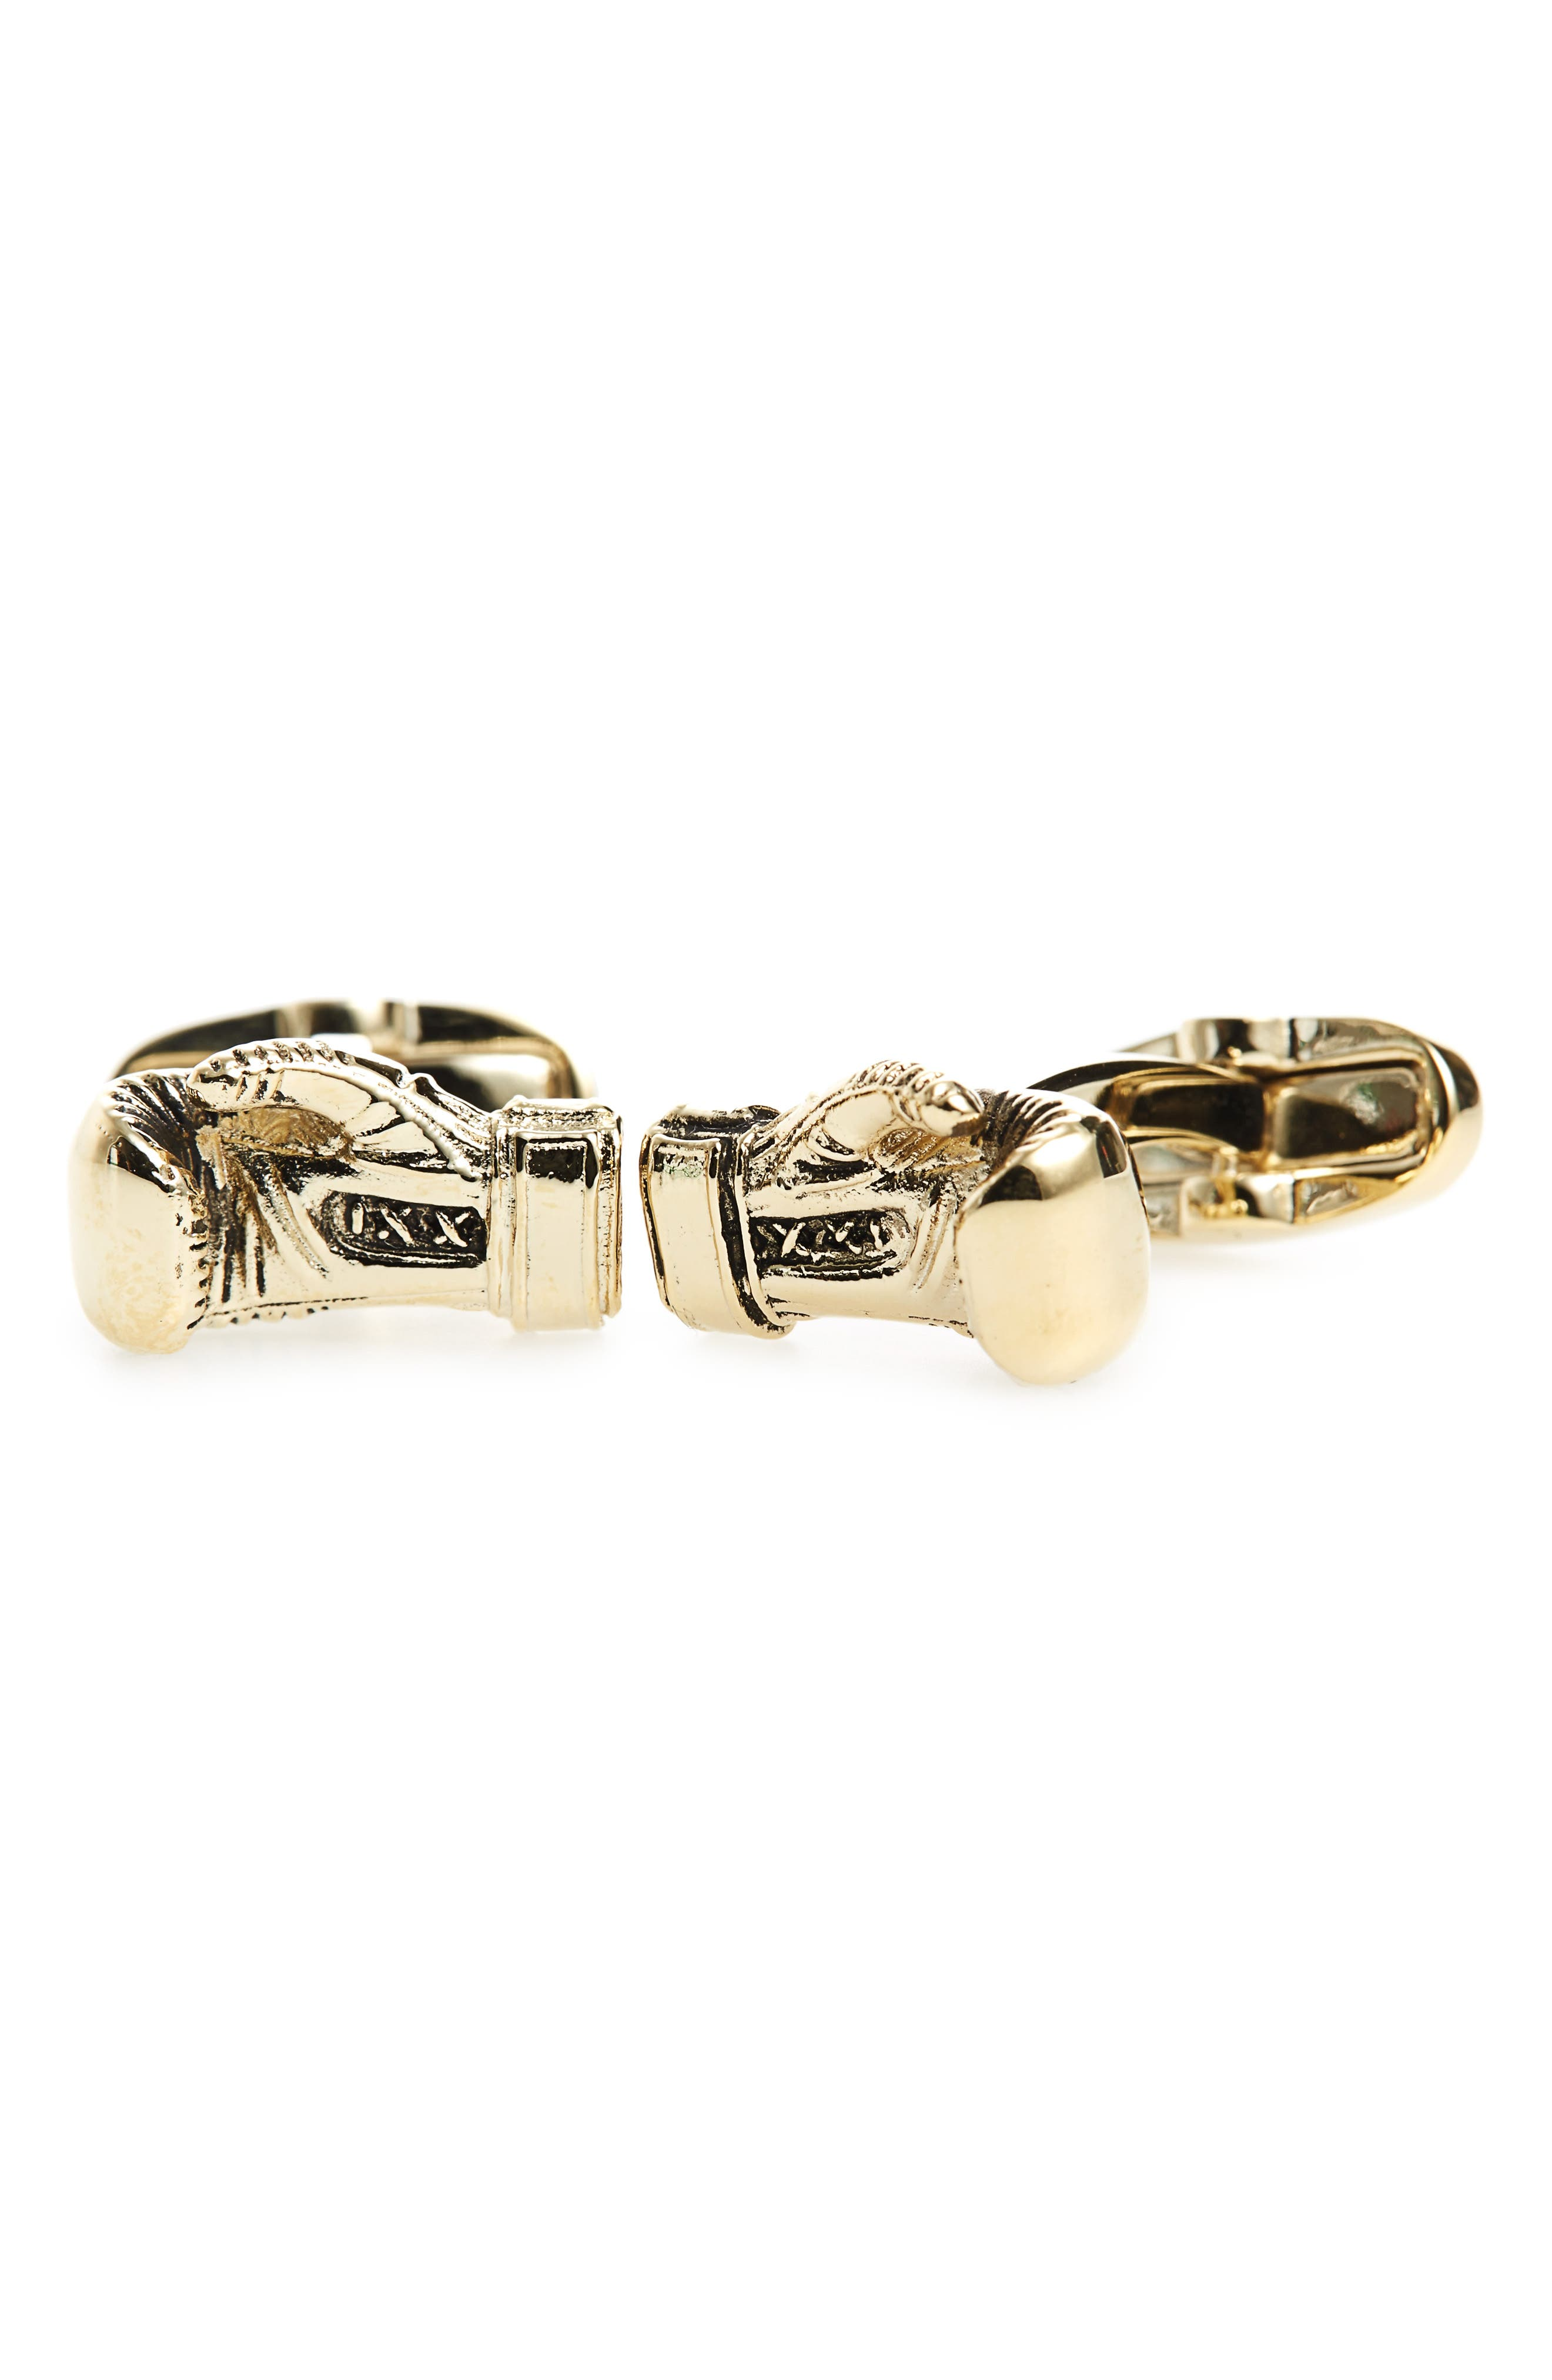 Boxing Glove Cuff Links,                         Main,                         color, Gold